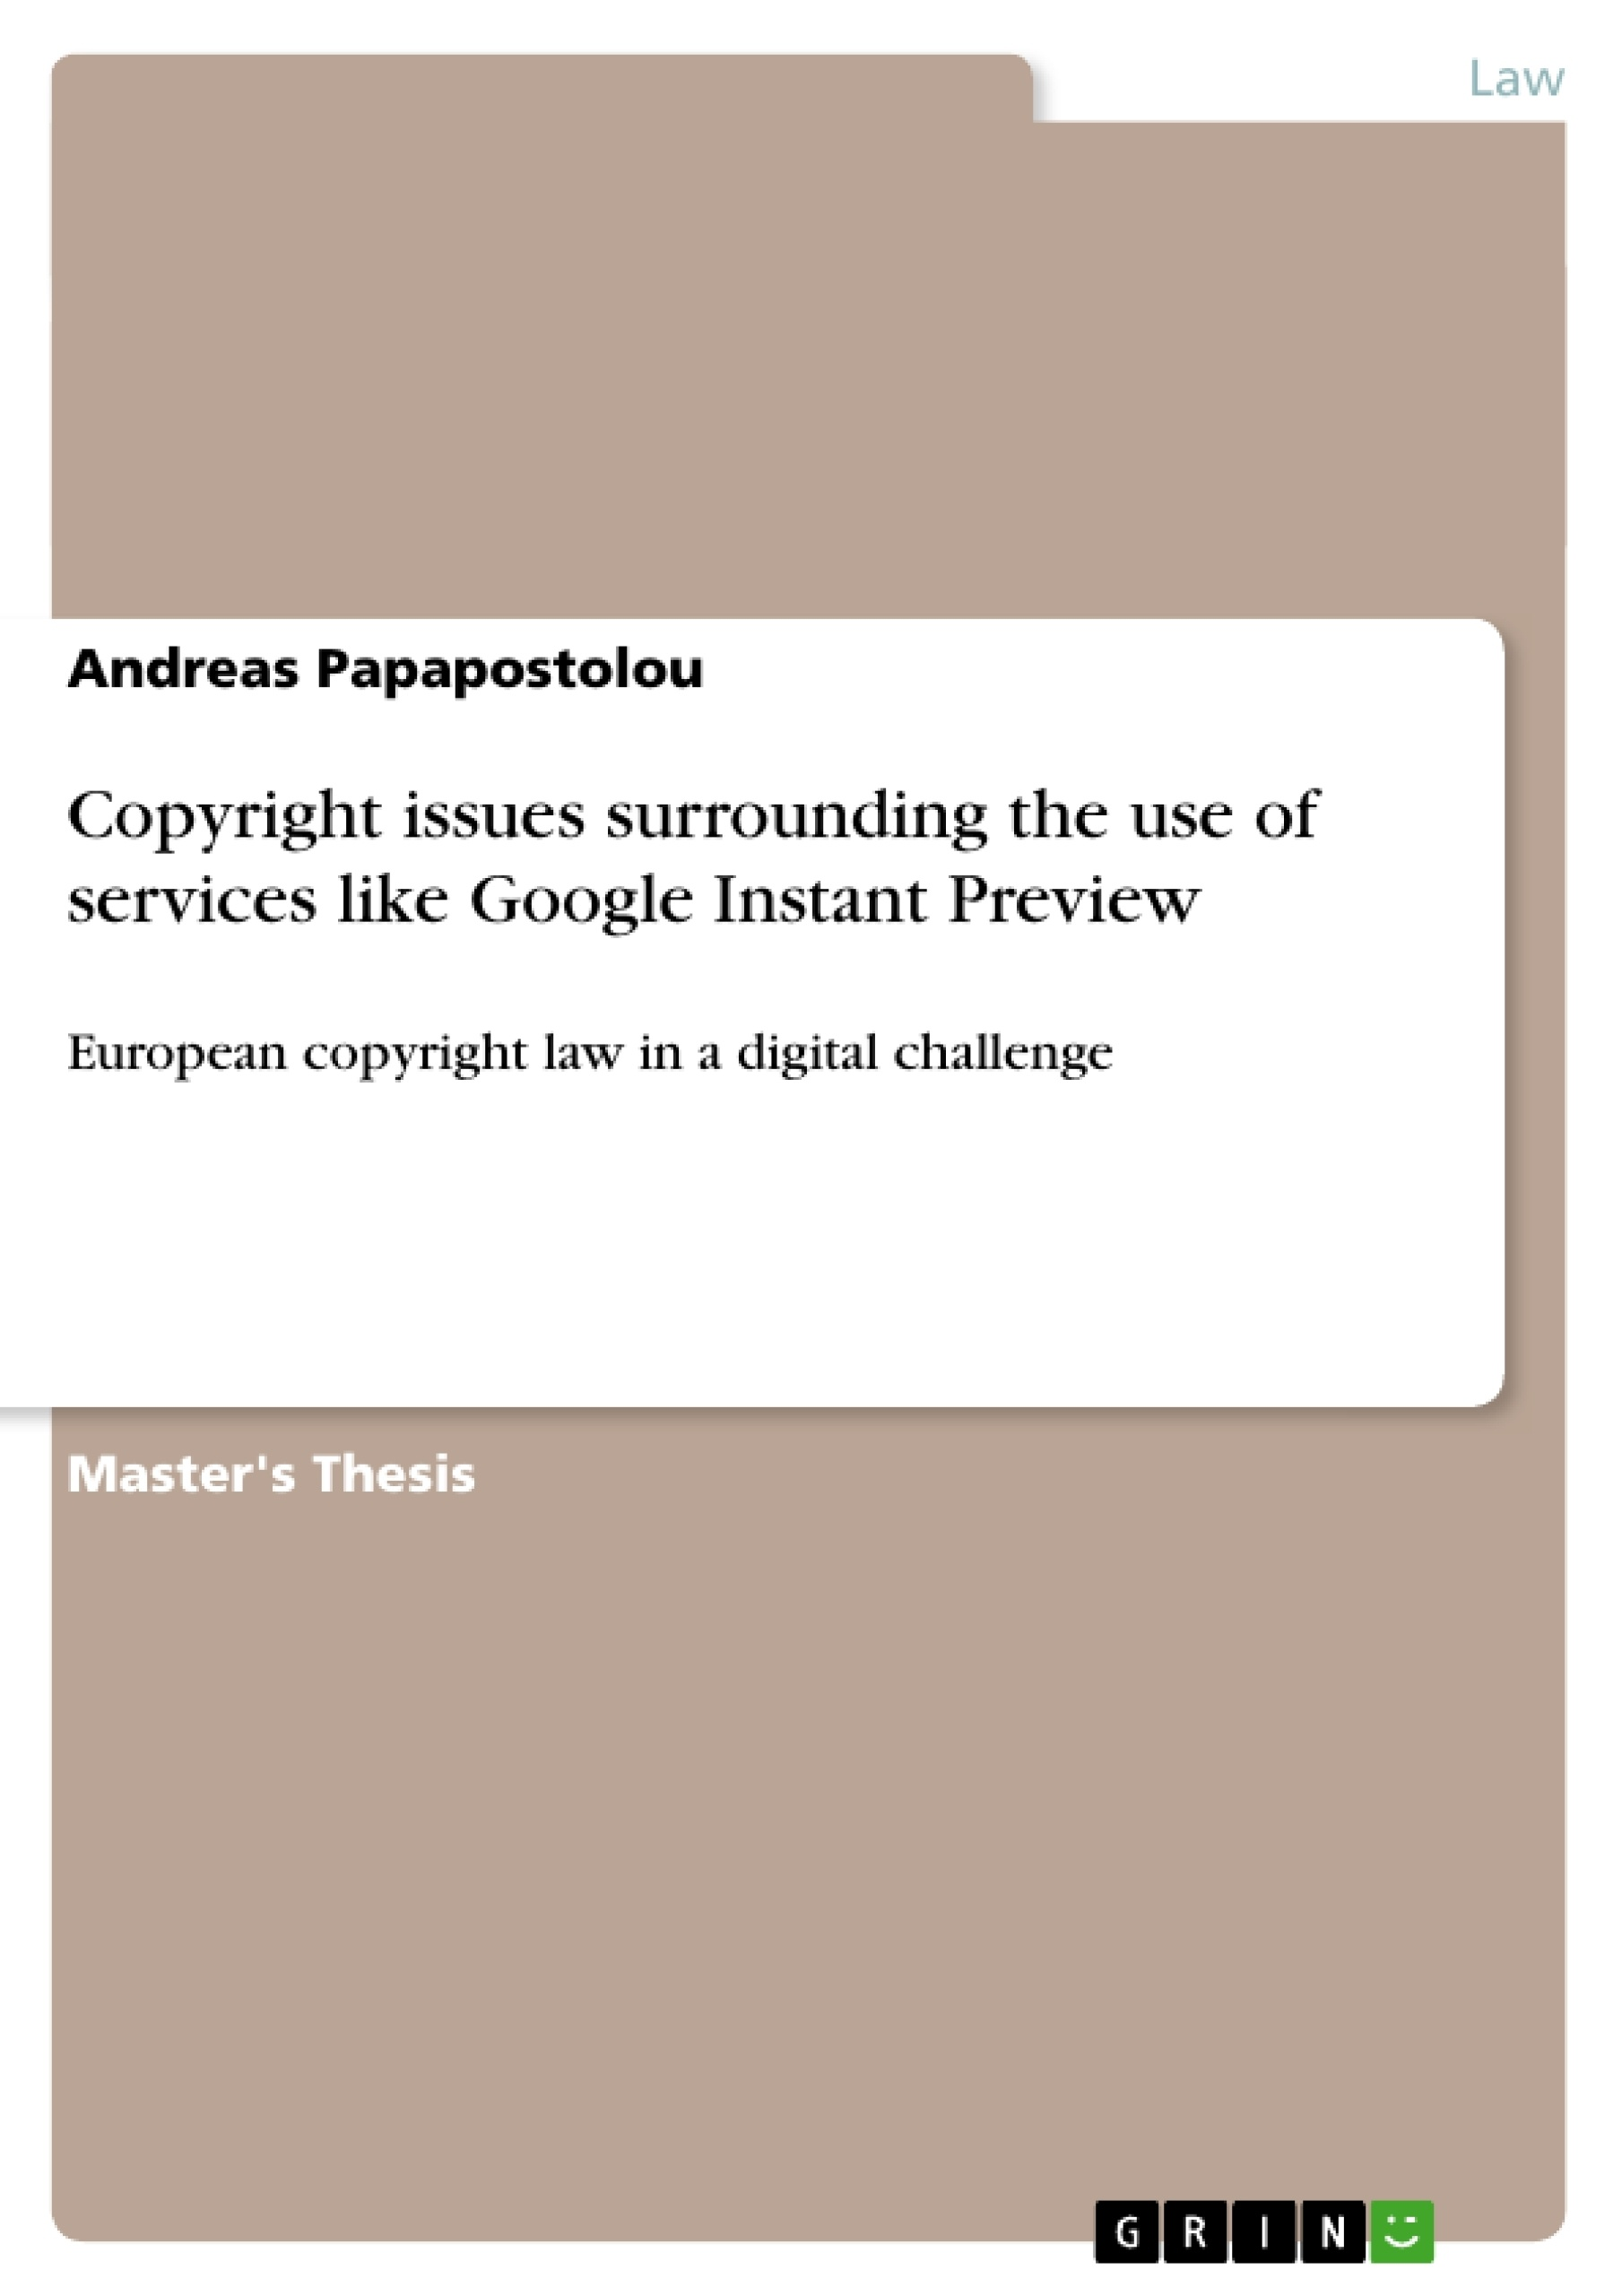 Title: Copyright issues surrounding the use of services like Google Instant Preview